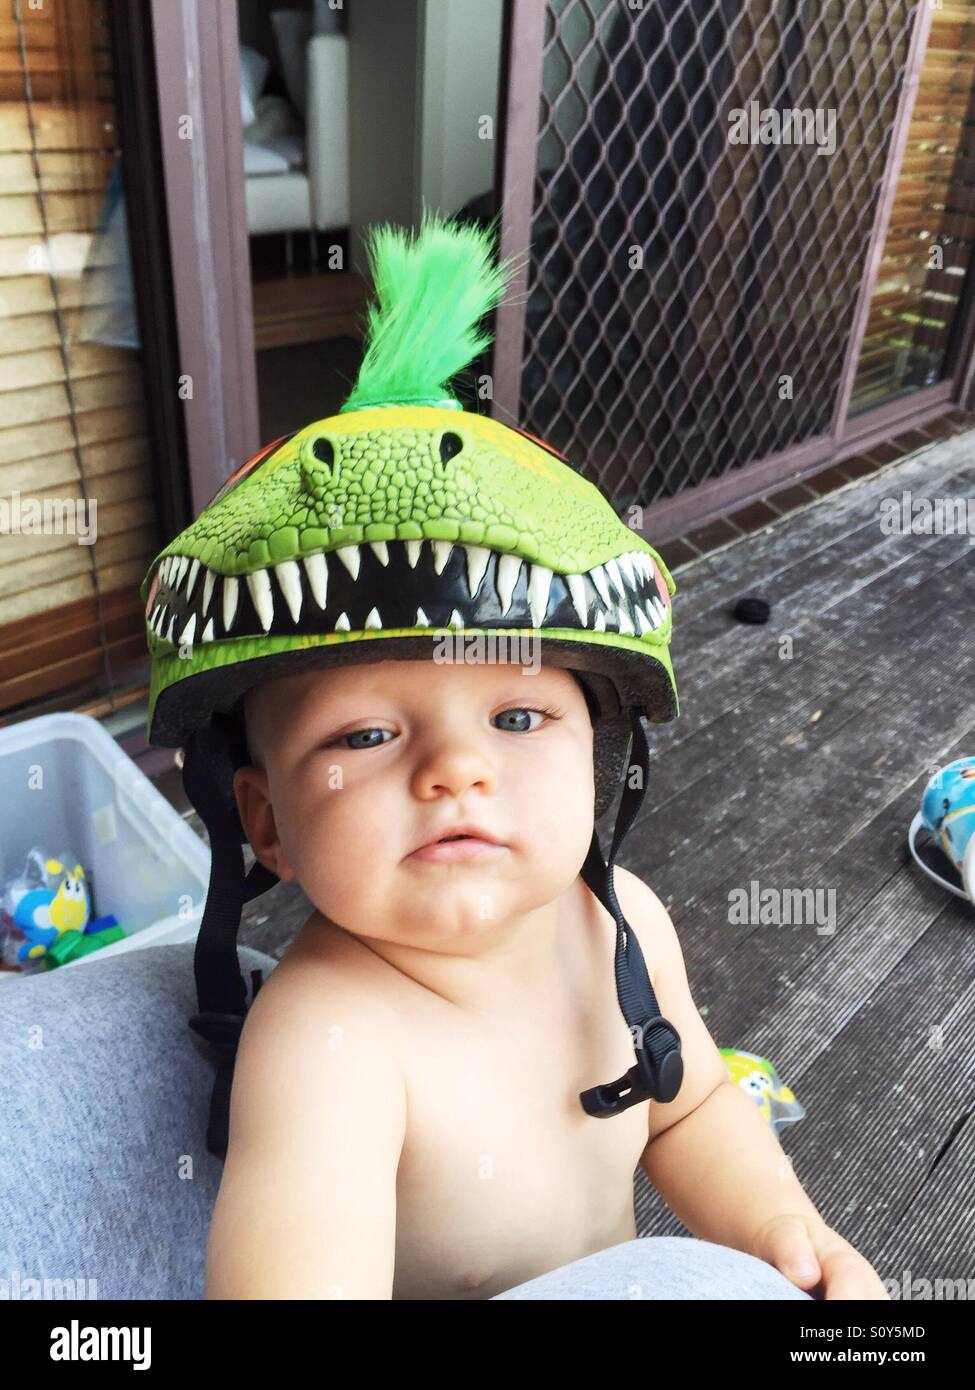 Cute little boy with his dinosaur helmet on - Stock Image